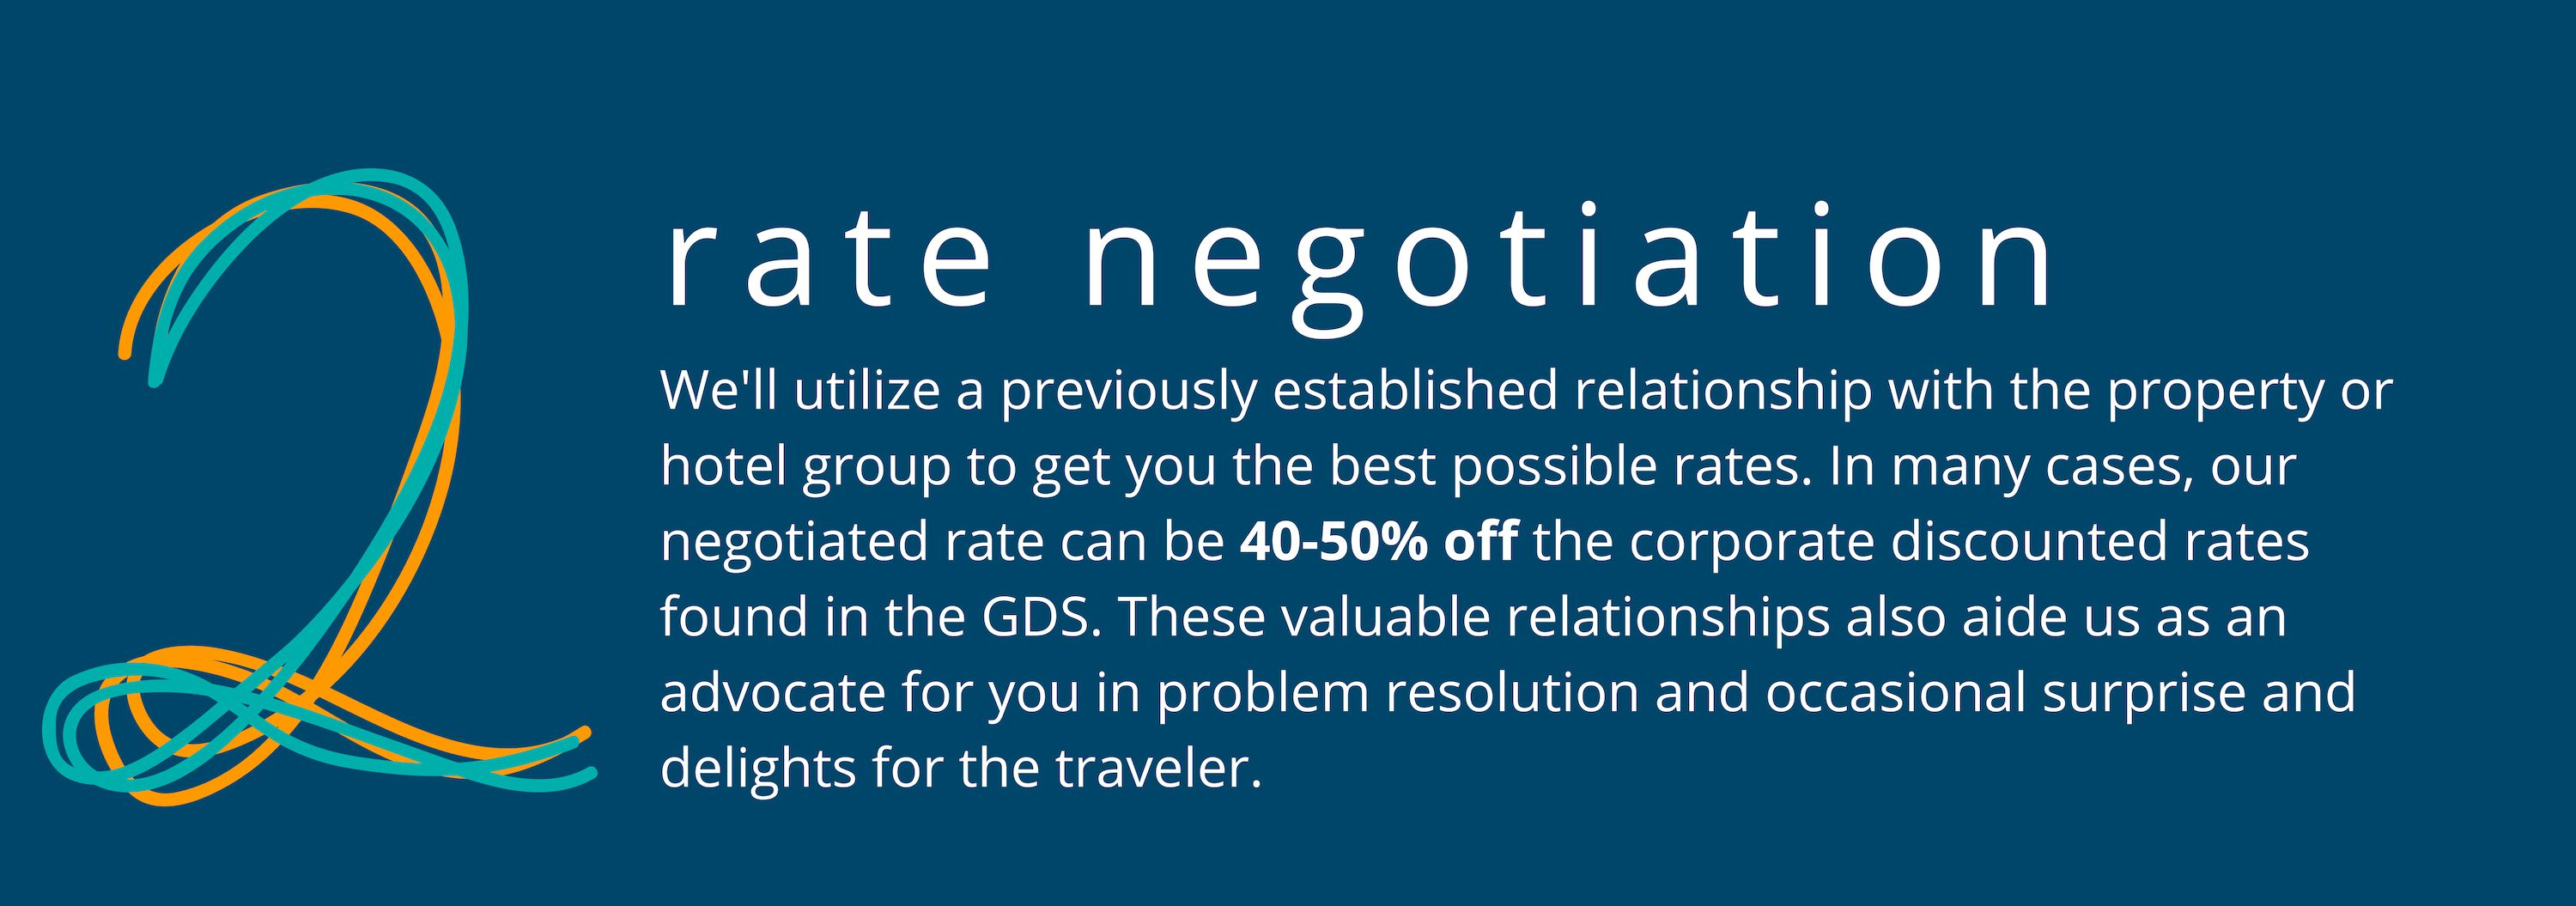 Corporate Lodging Management - Travel Partners